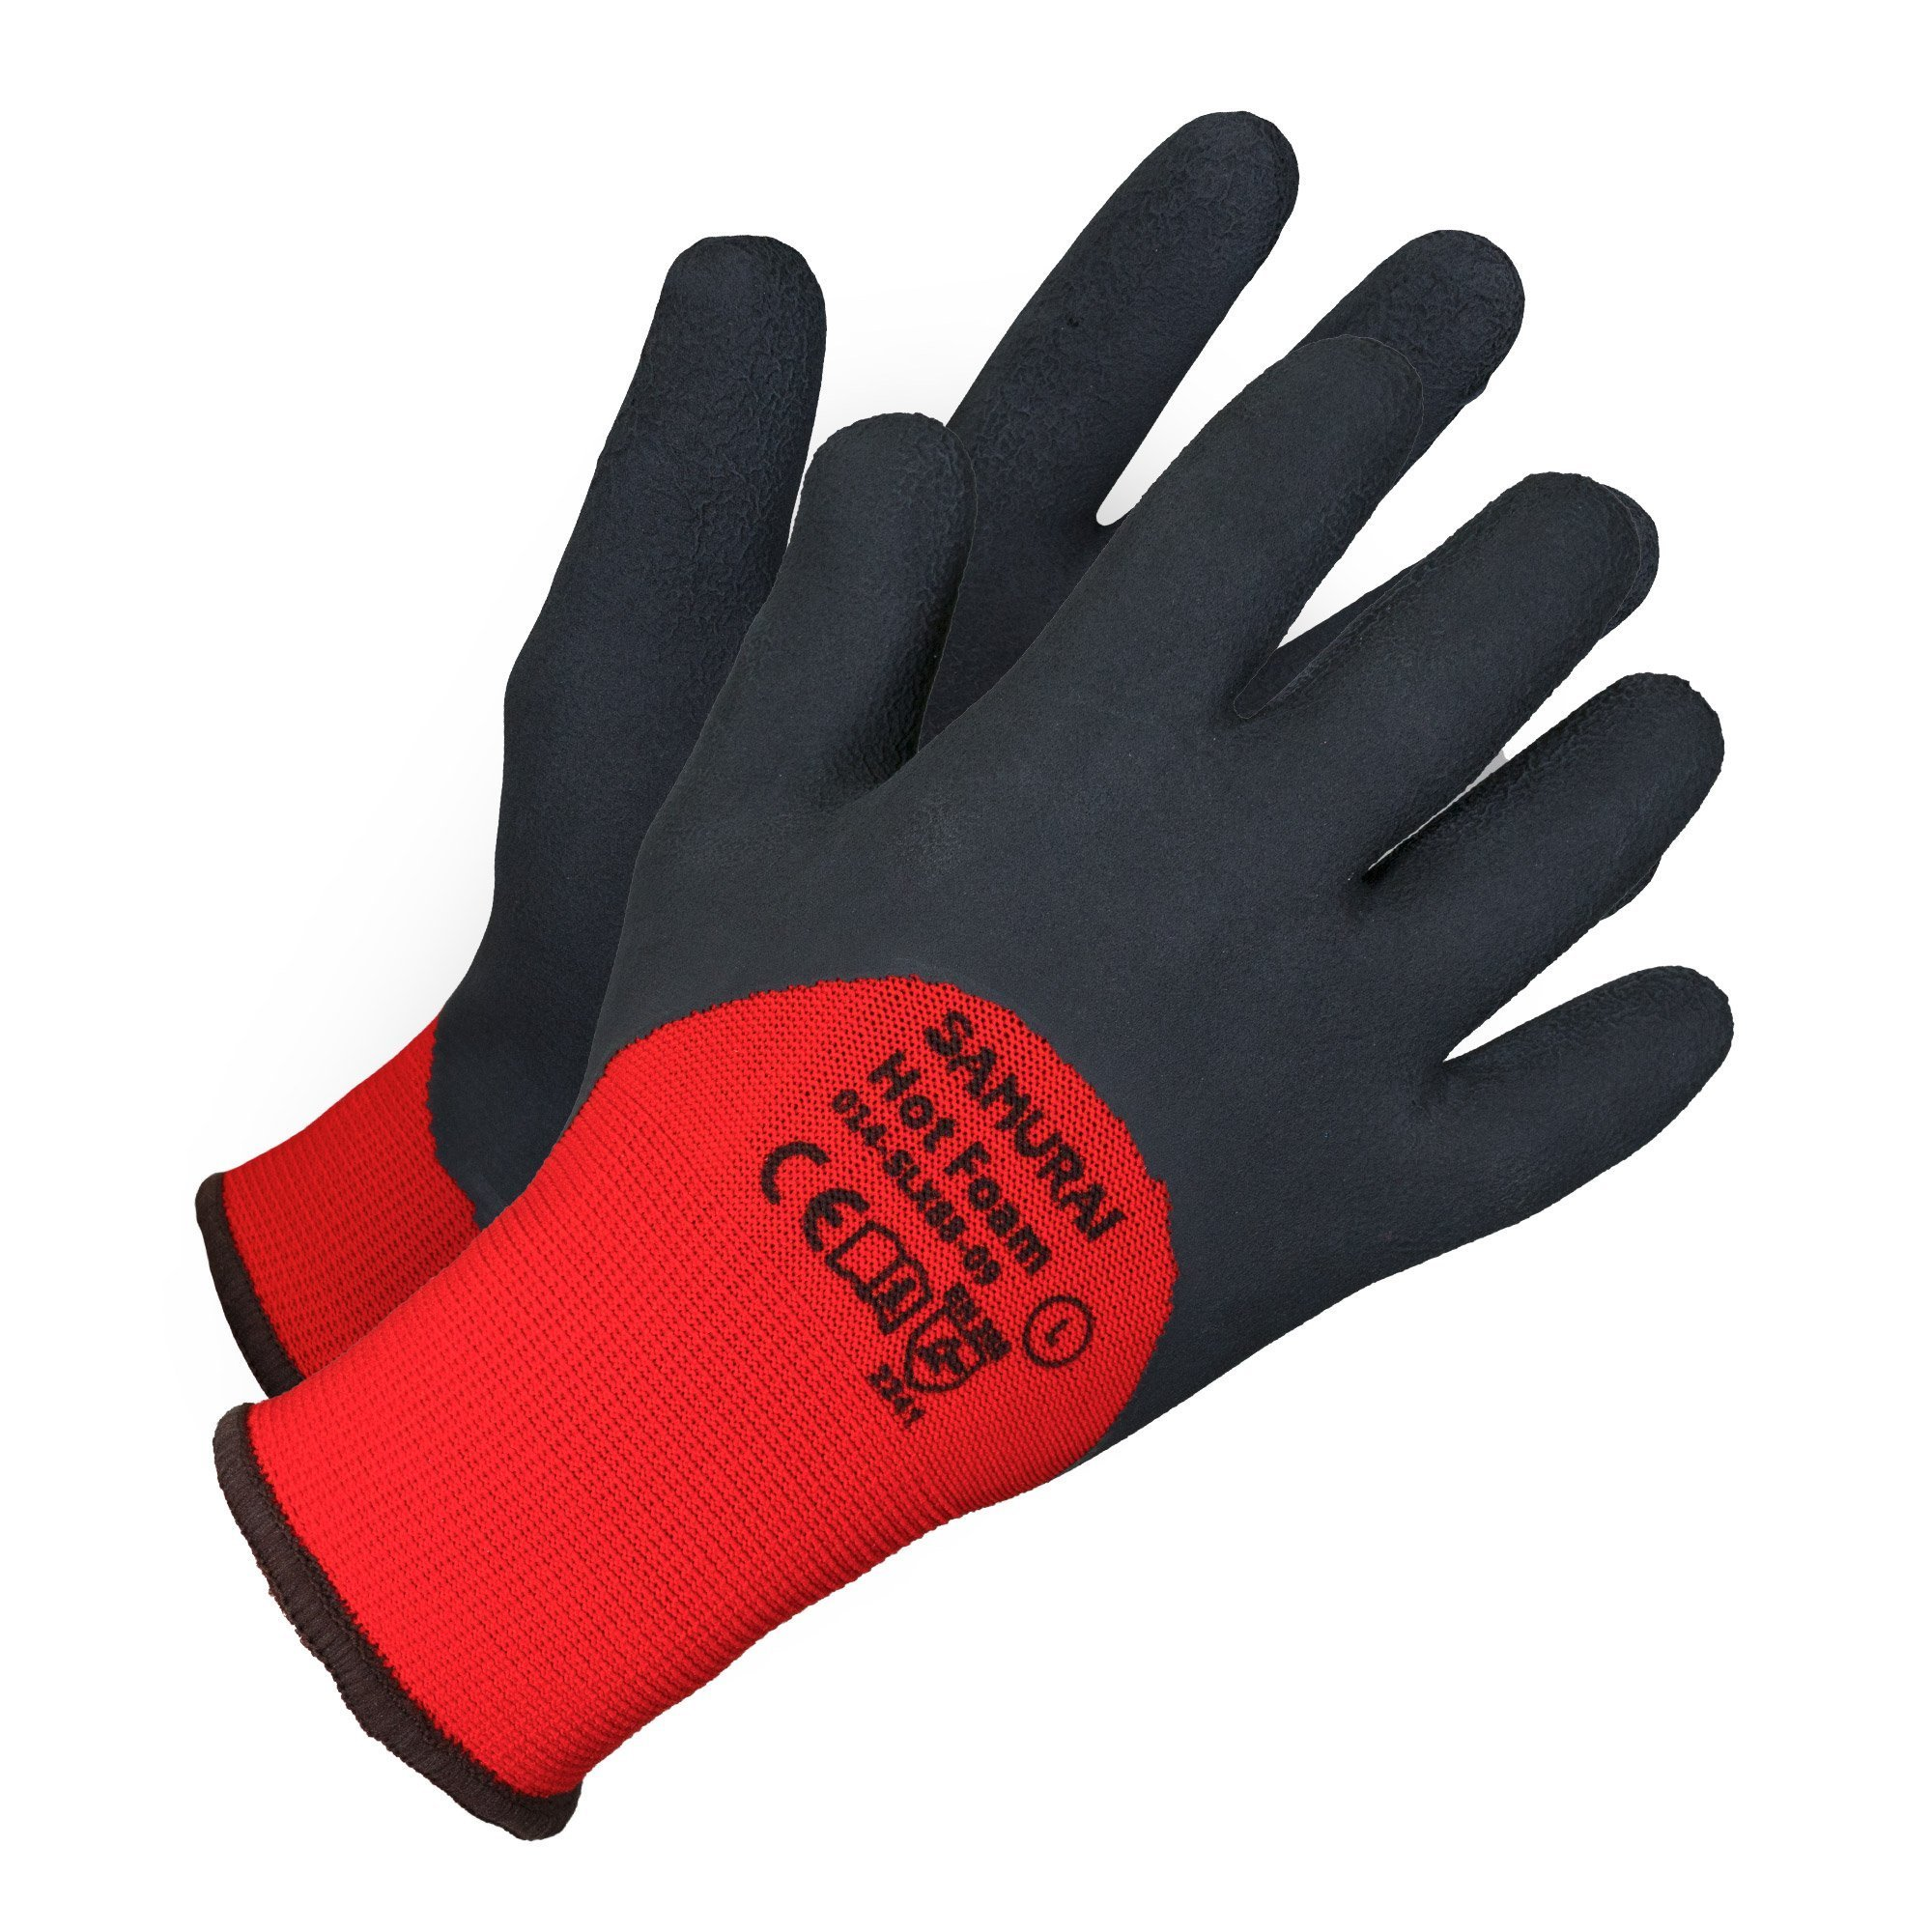 Gloves - Samurai Hot Foam - Insulated - Red - Medium